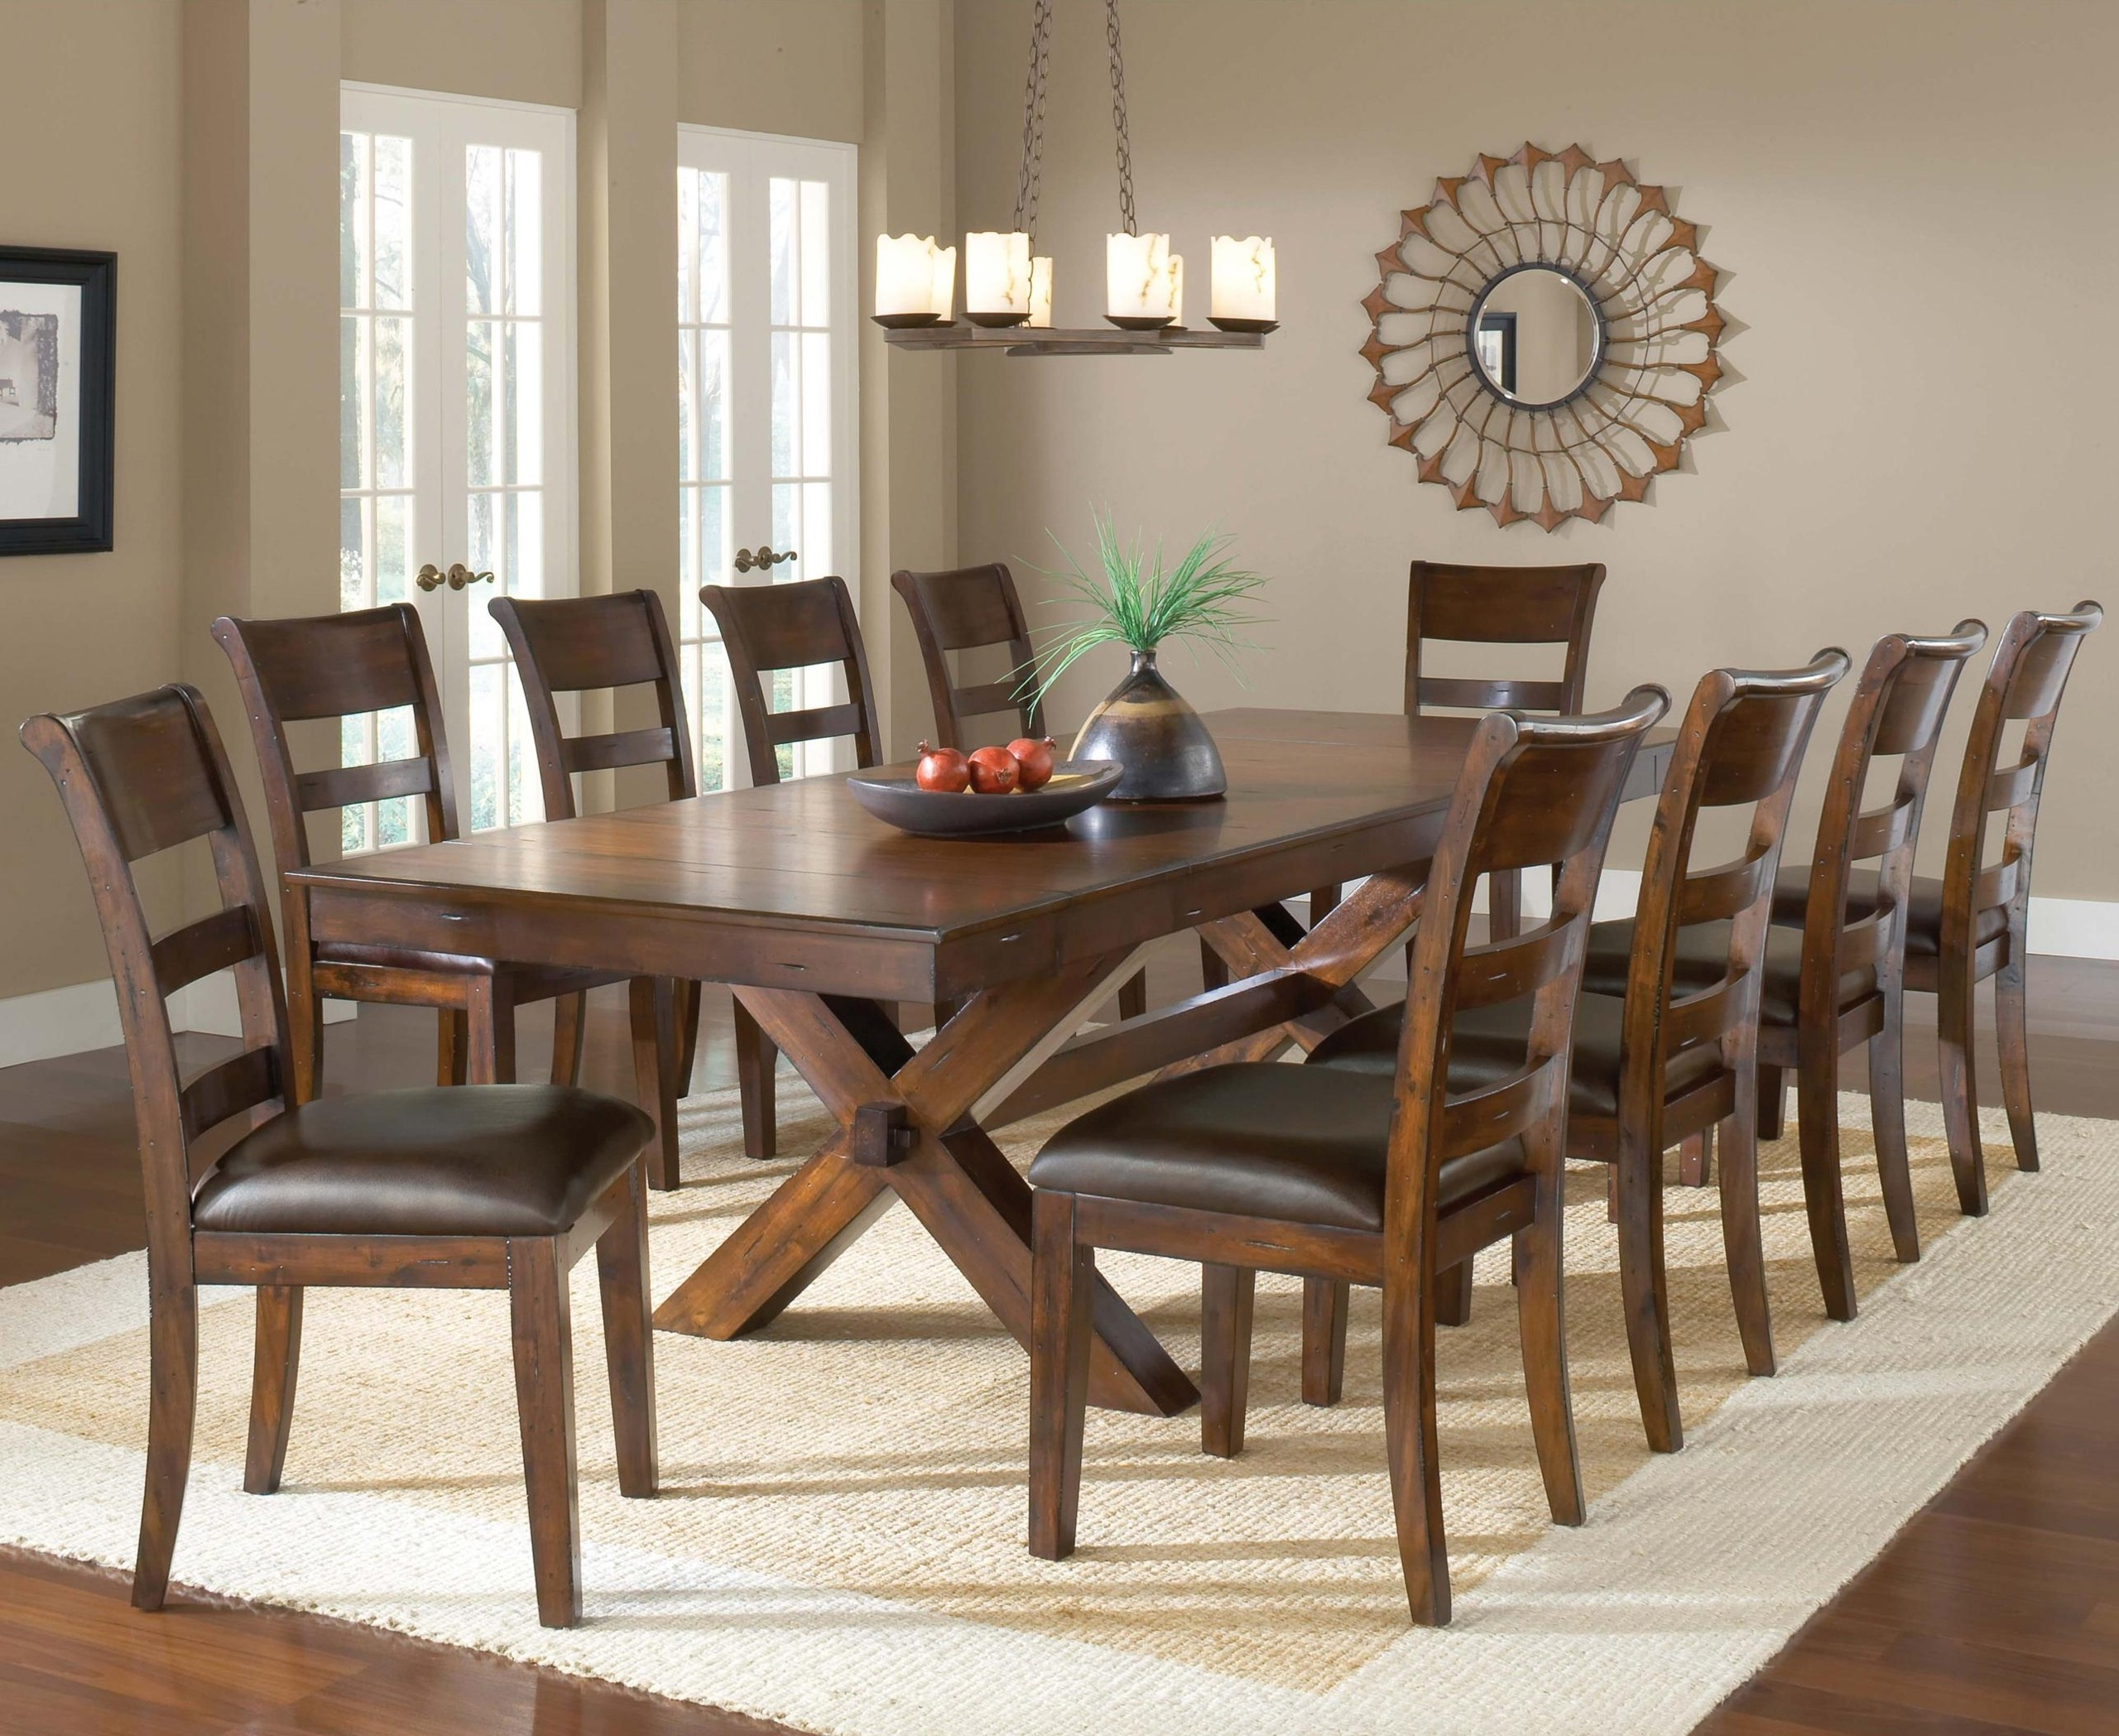 10 Seater Oval Dining Table